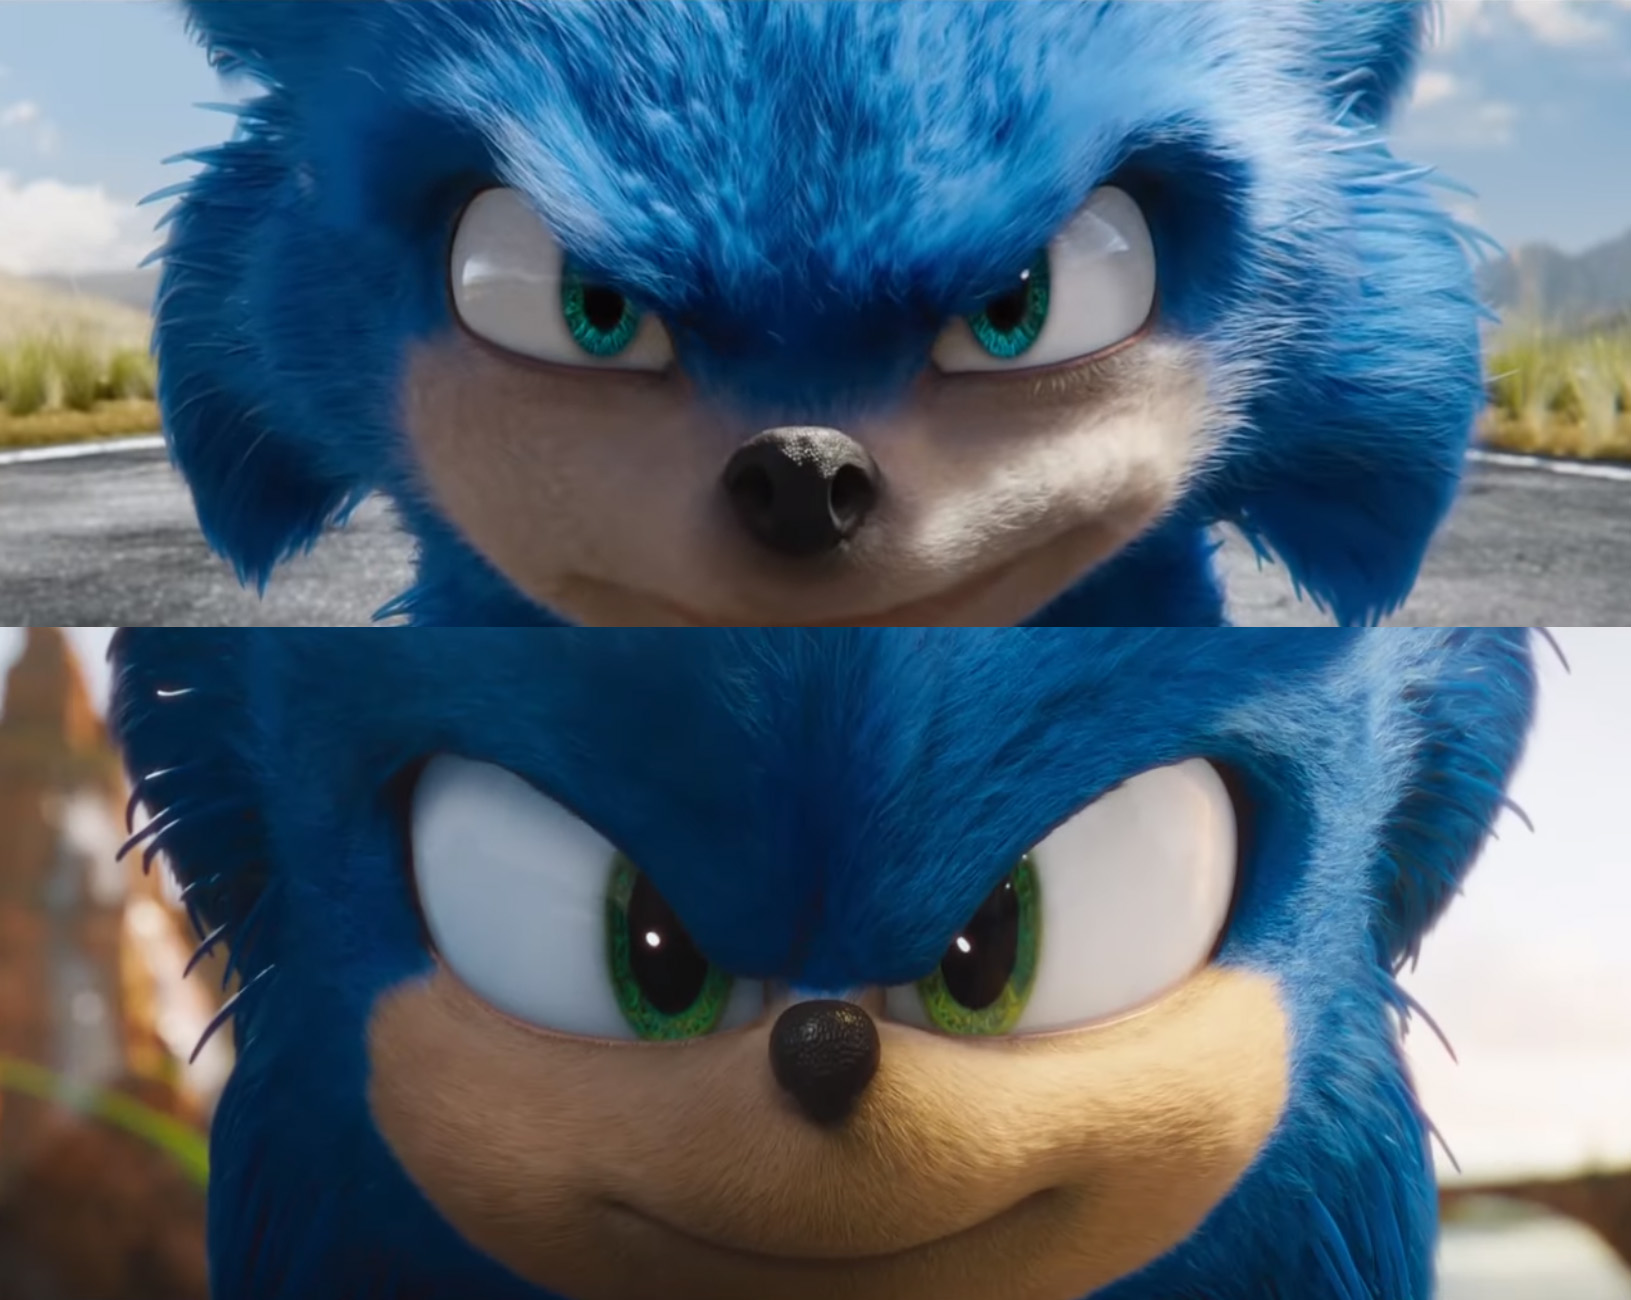 Transformation Tuesday Check Out Some Before And After Shots Of The Sonic Movie The Sonic Stadium